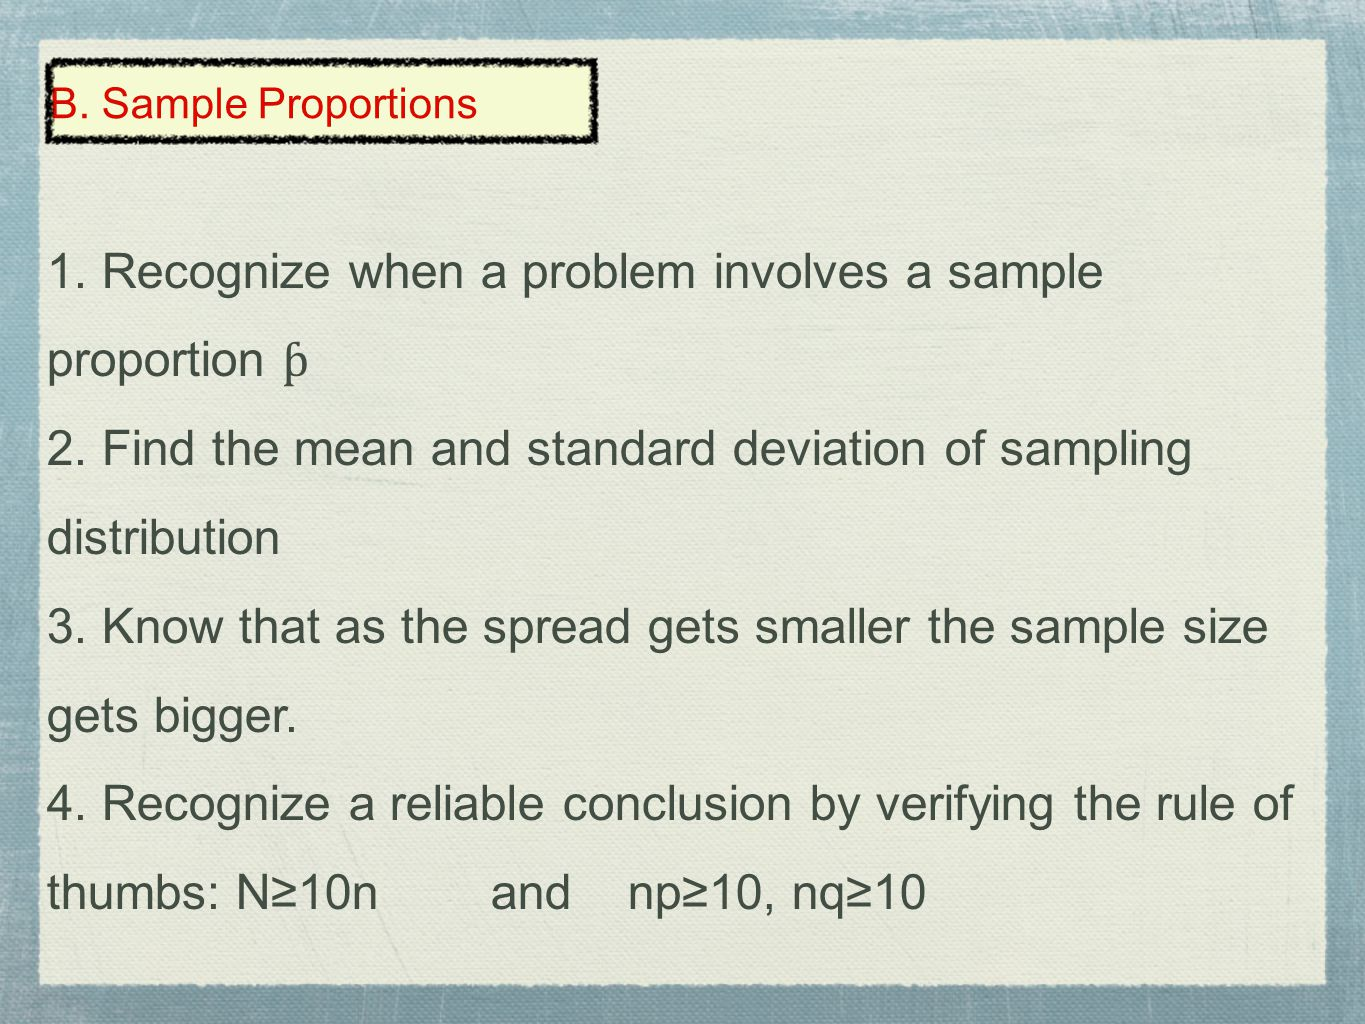 1. Recognize when a problem involves a sample proportion ƥ